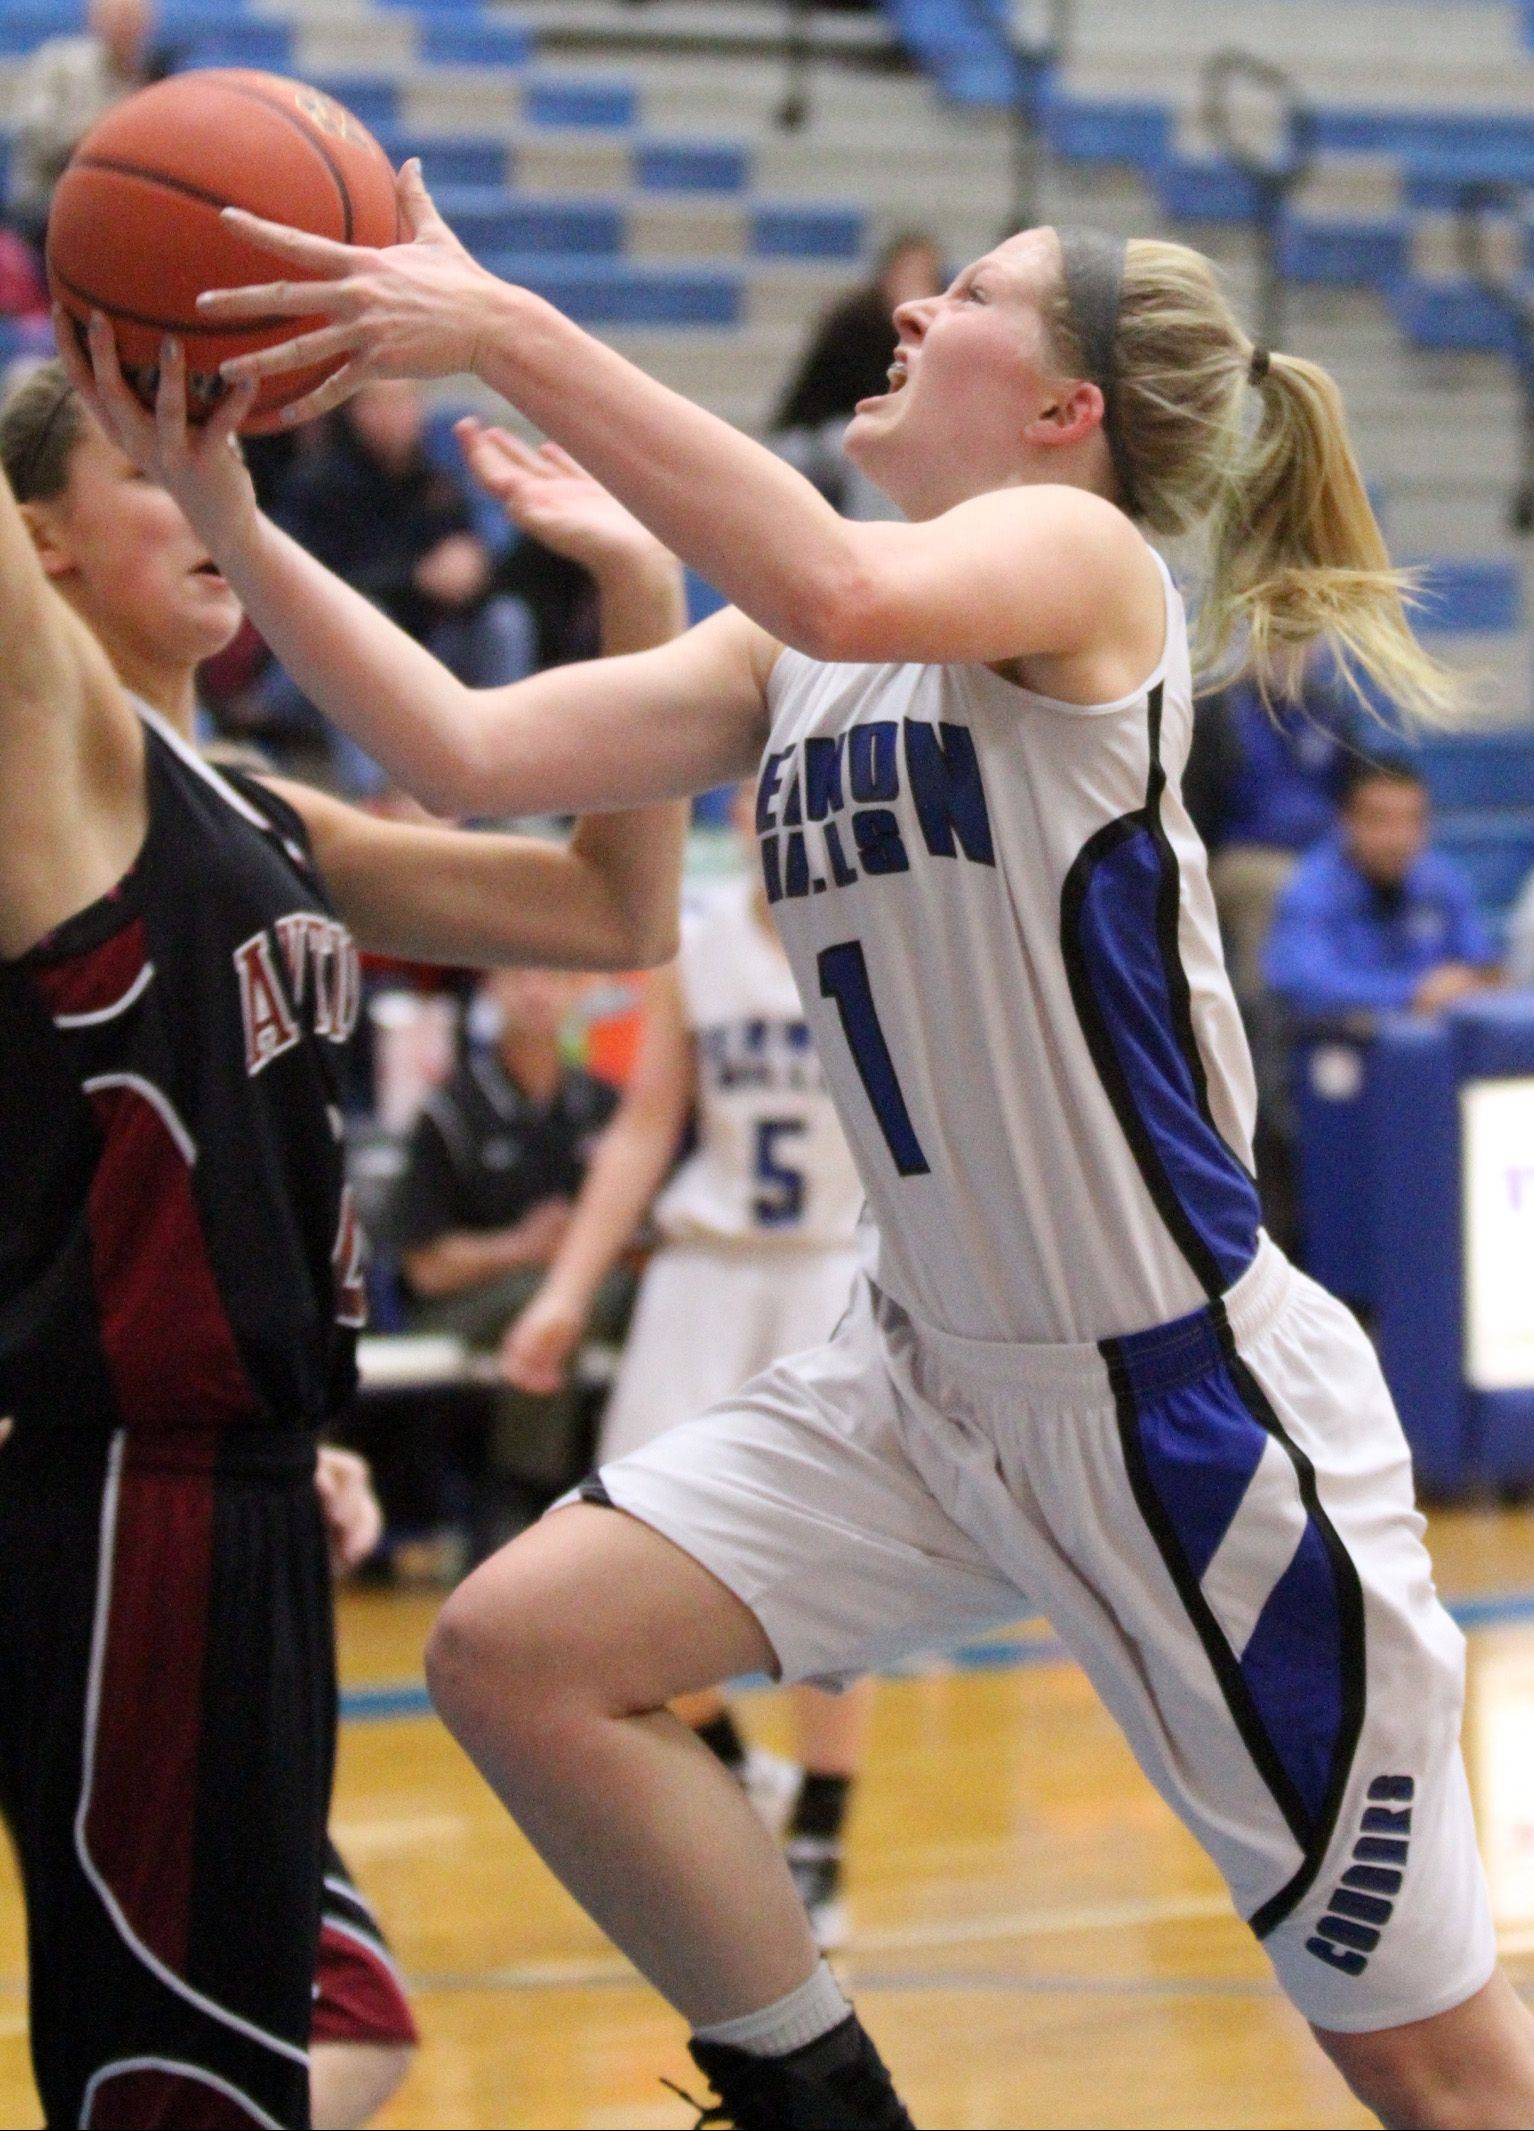 Vernon Hills' Sydney Smith drives in for a layup during Saturday's game against Antioch.